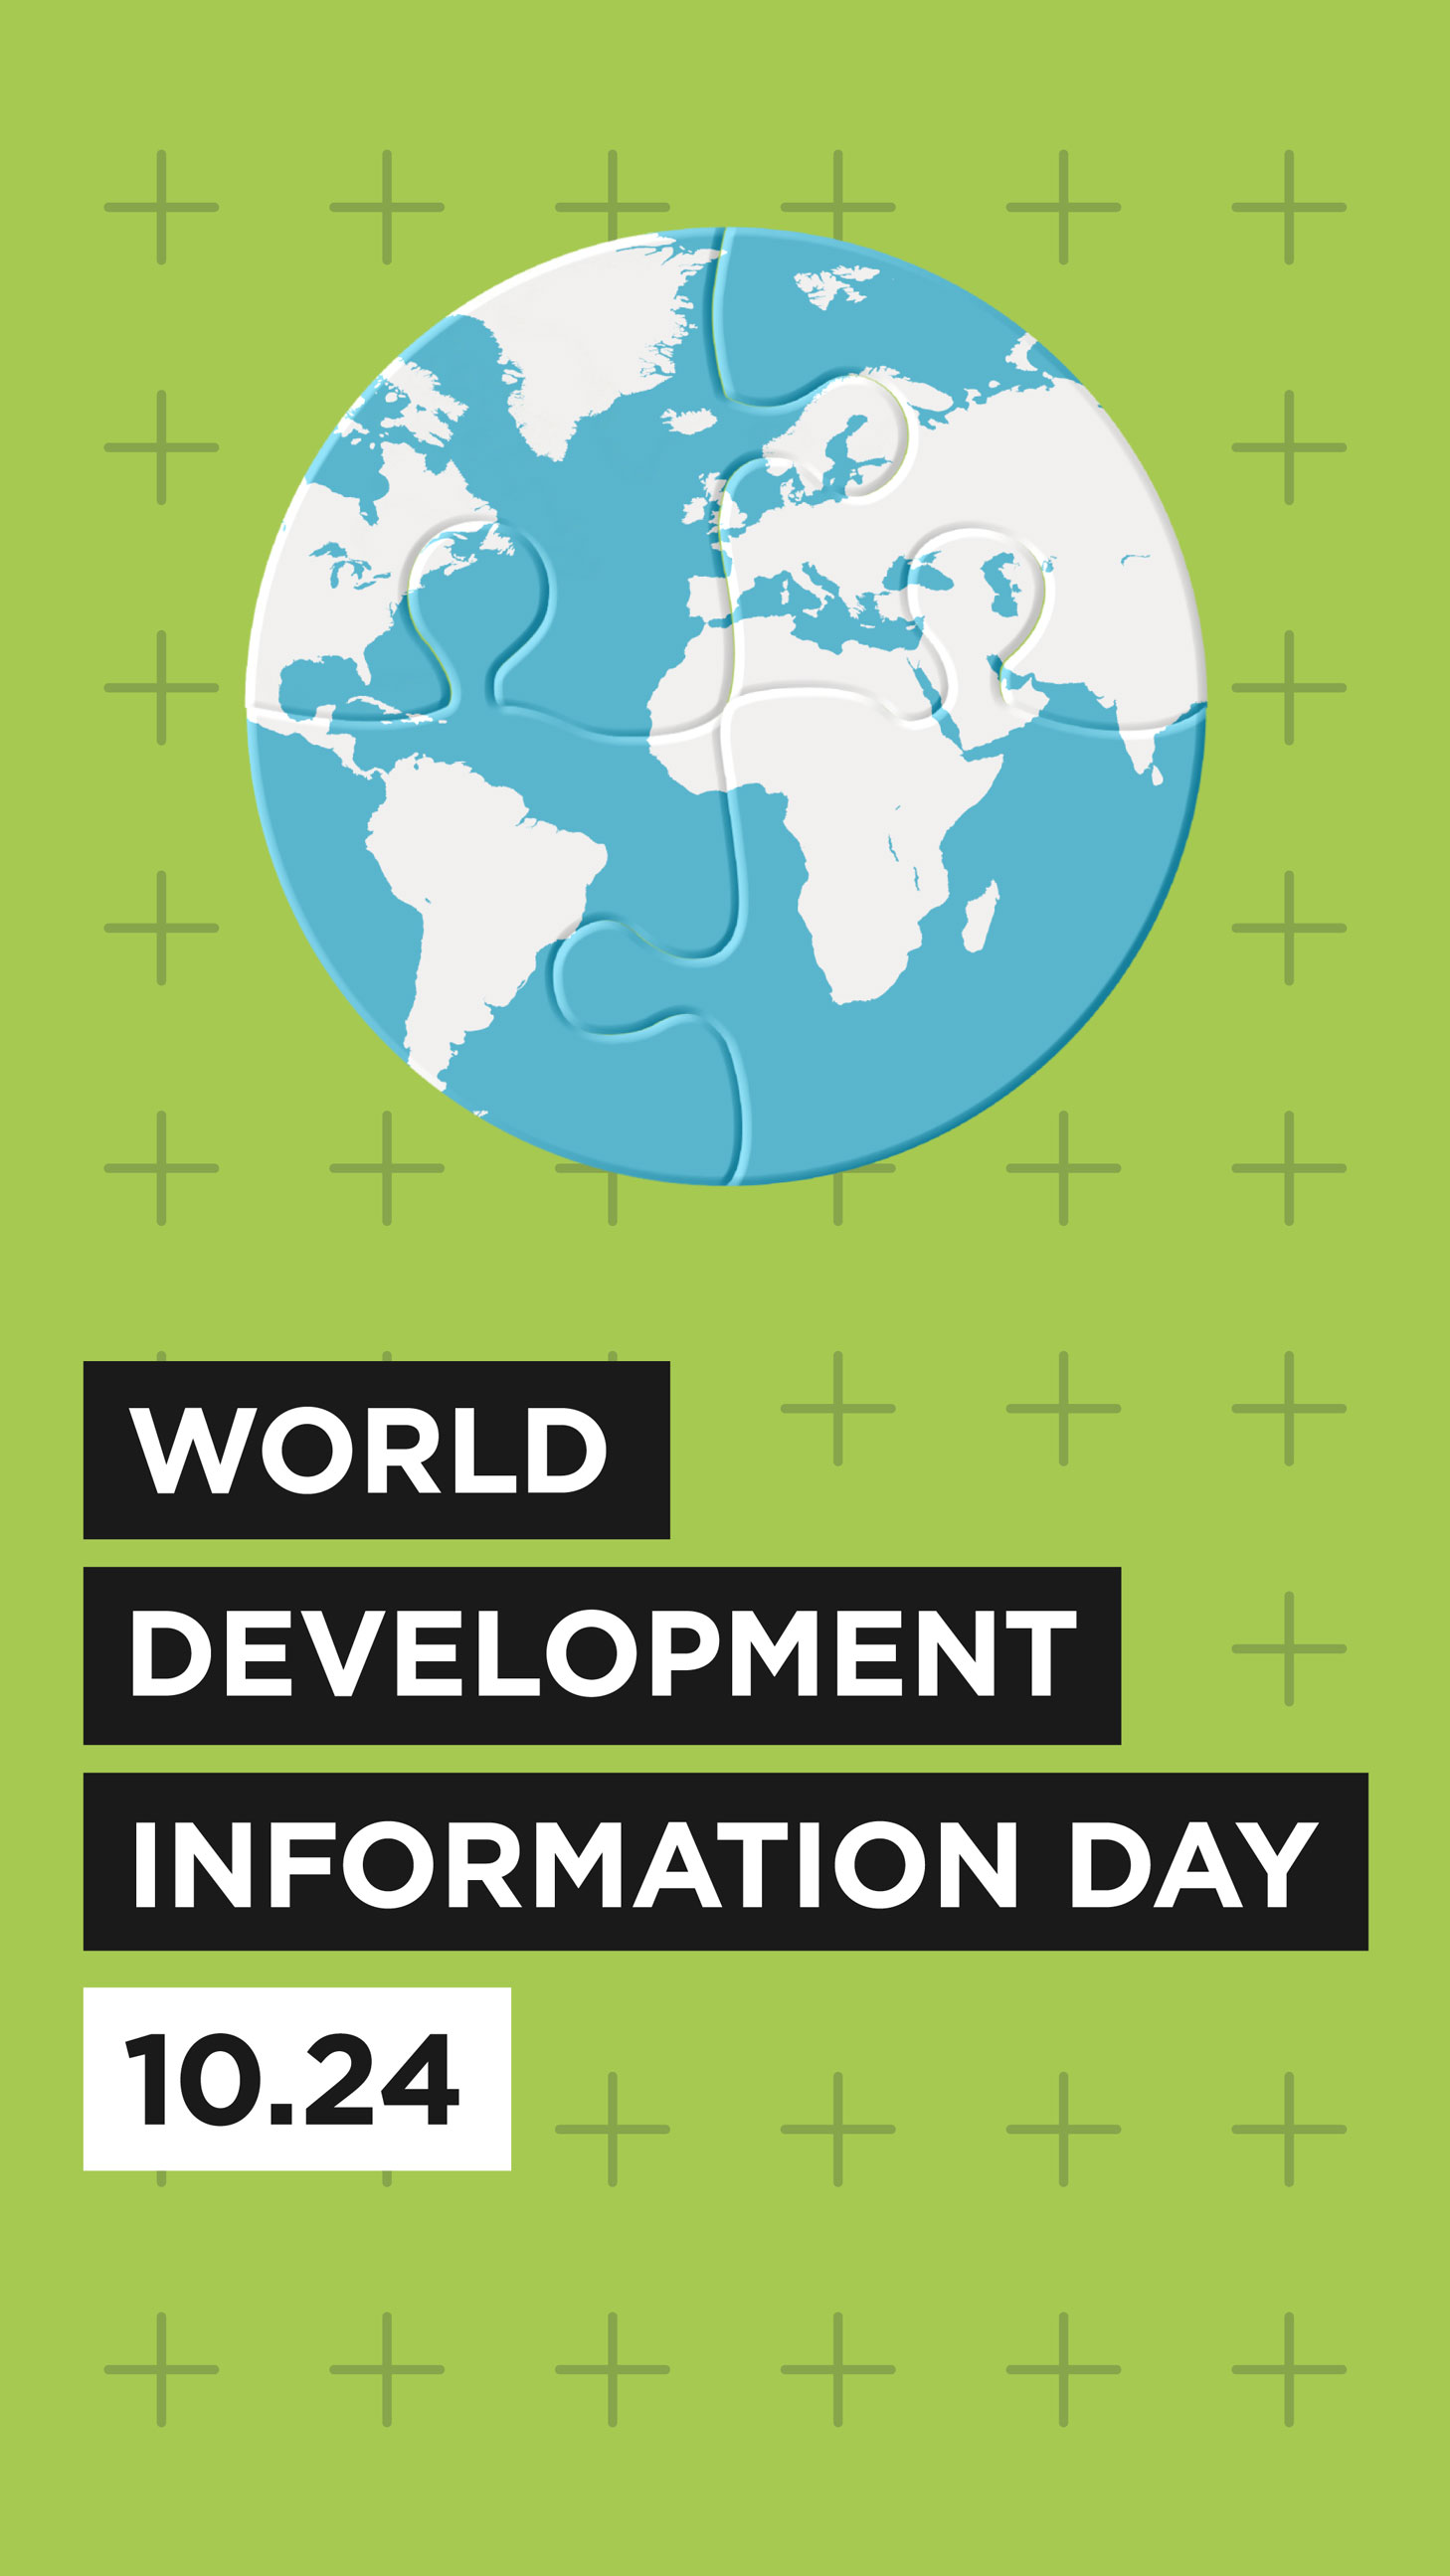 WorldDevelopmentInformationDay